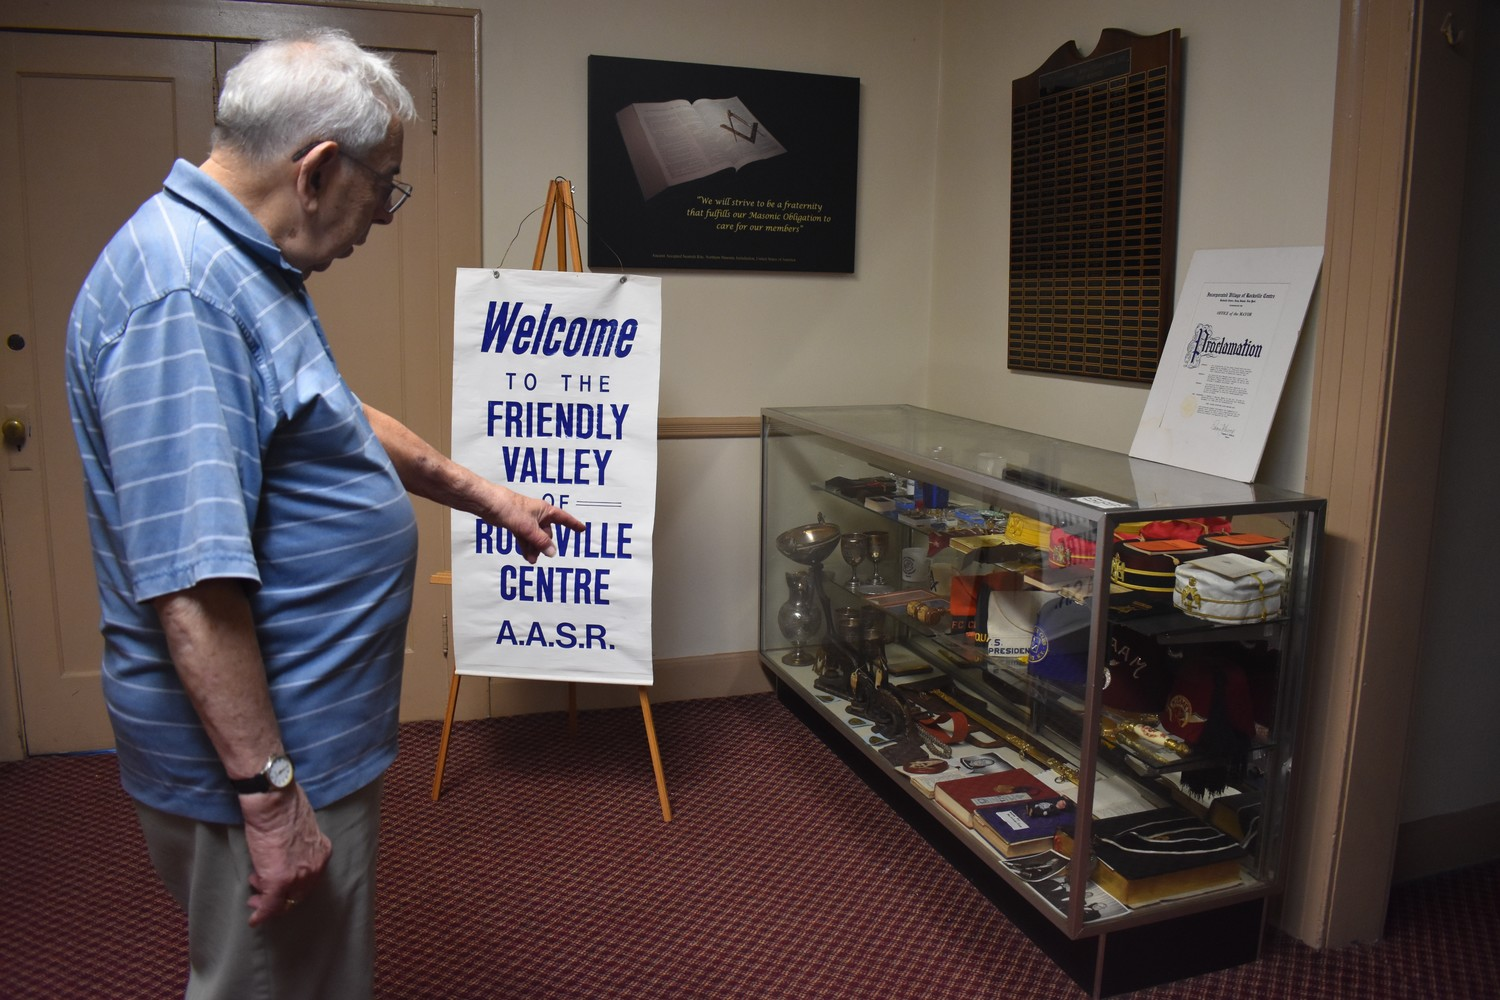 Bob Stack, a freemason for more than 50 years, showed off the display cases he recently filled to preserve the history of fellow members of freemasonry.